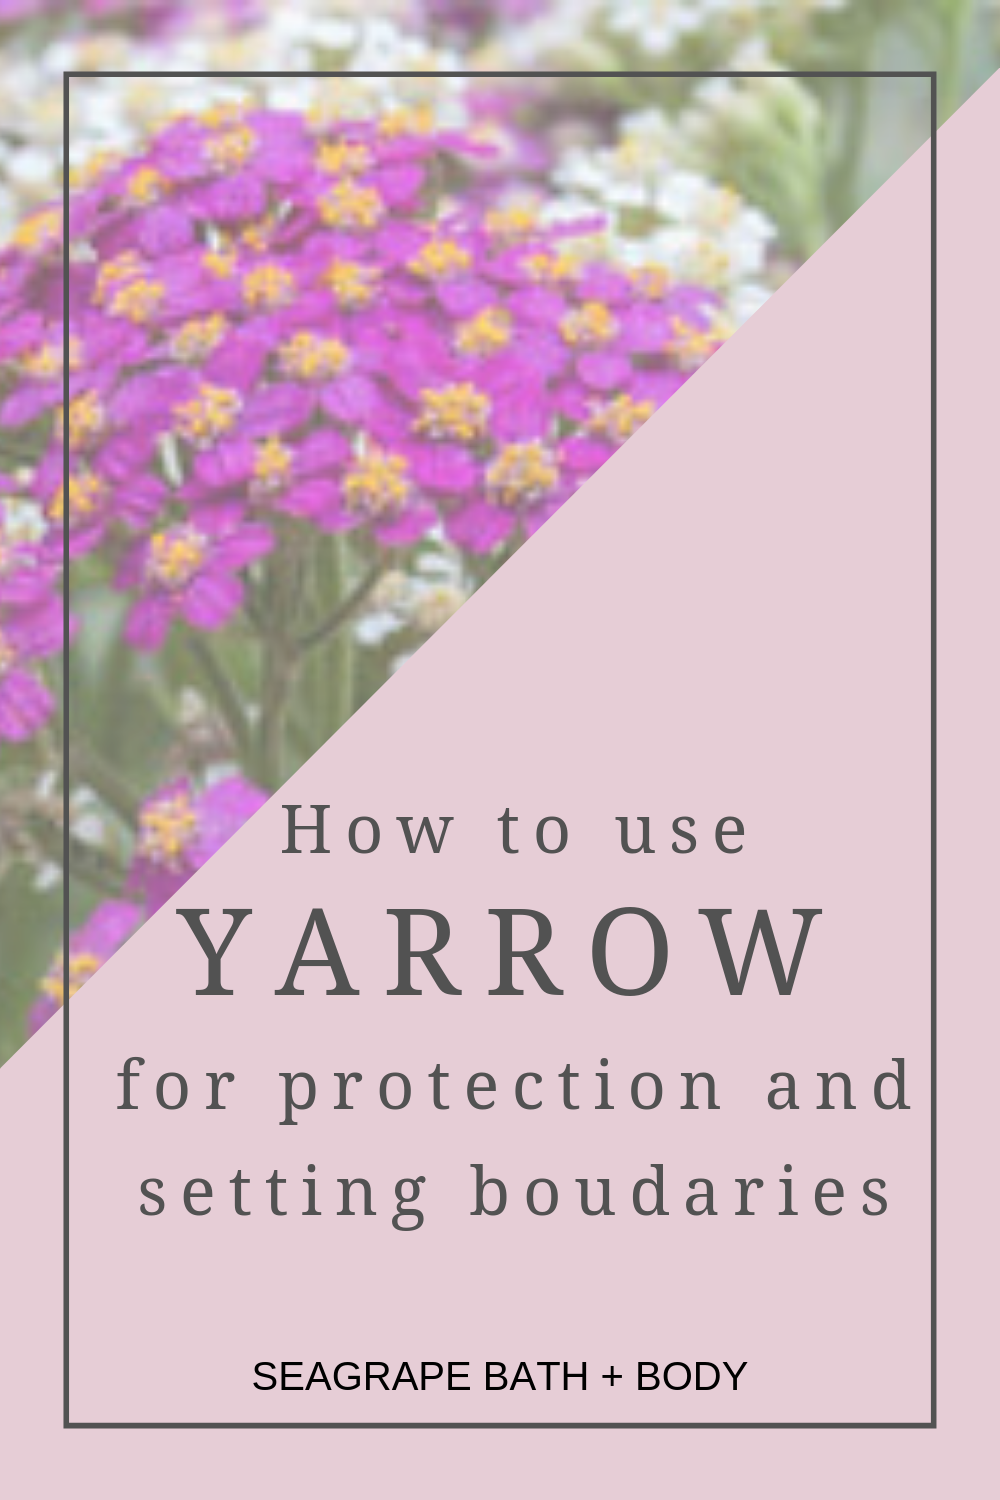 Yarrow A Plant That Grows Anywhere Has Many Wonderful Uses And Benefits Including For Protection And Boundary Herbal Tinctures Yarrow Flower Essences Remedies